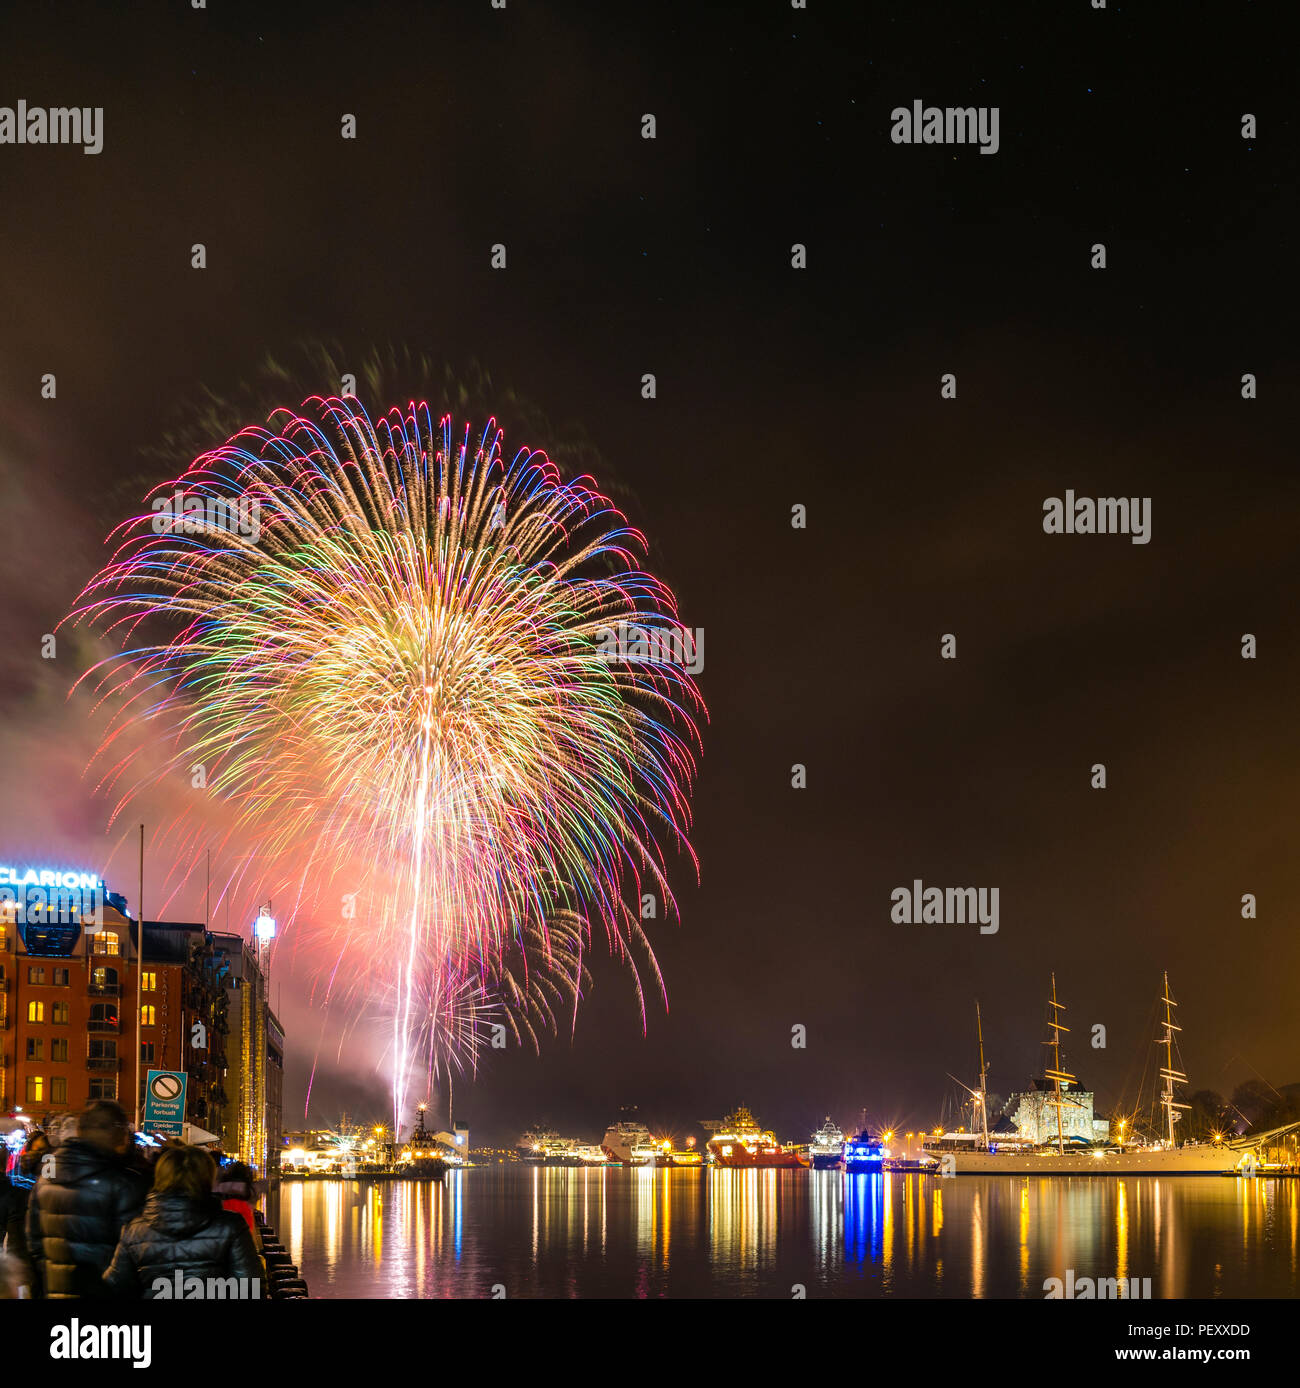 Fireworks in Bergen, Norway, at New years eve celebration. - Stock Image